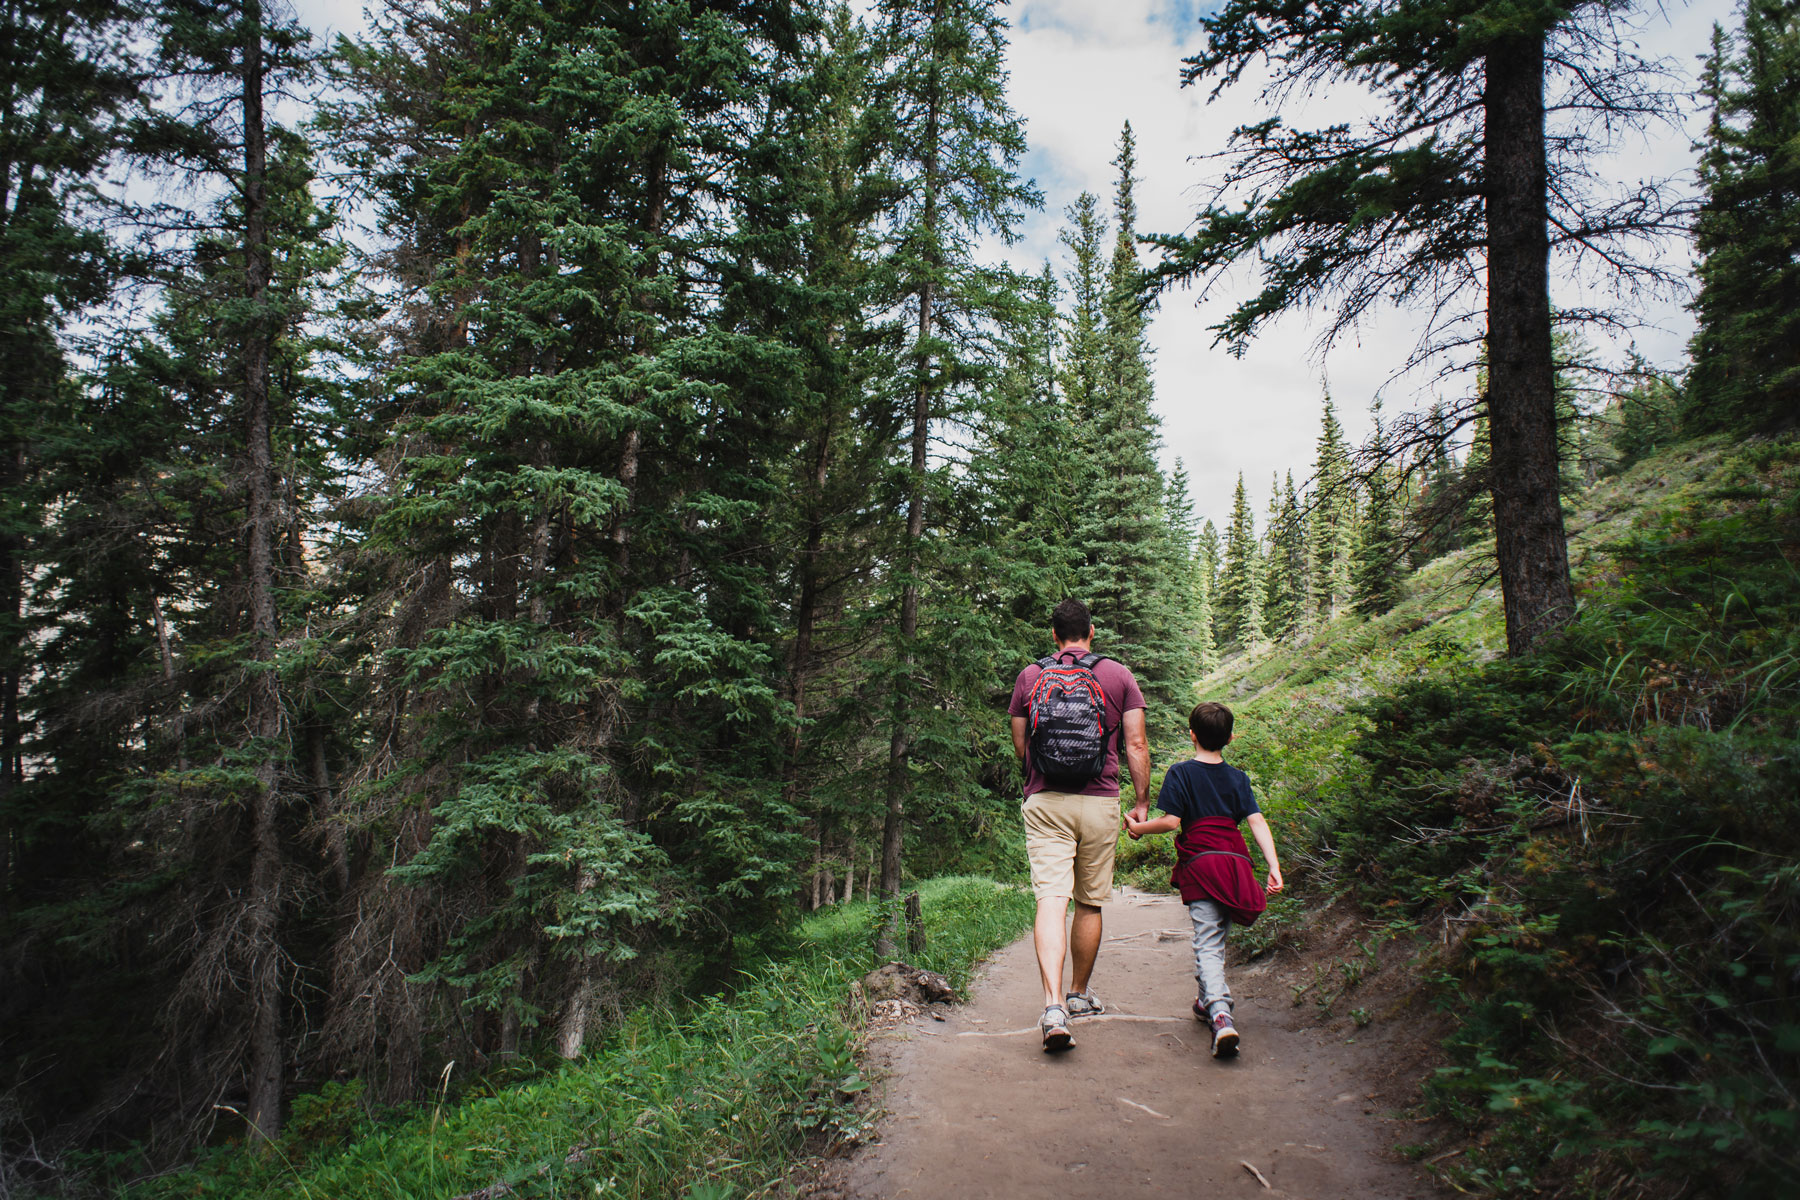 father and son hiking in a forest